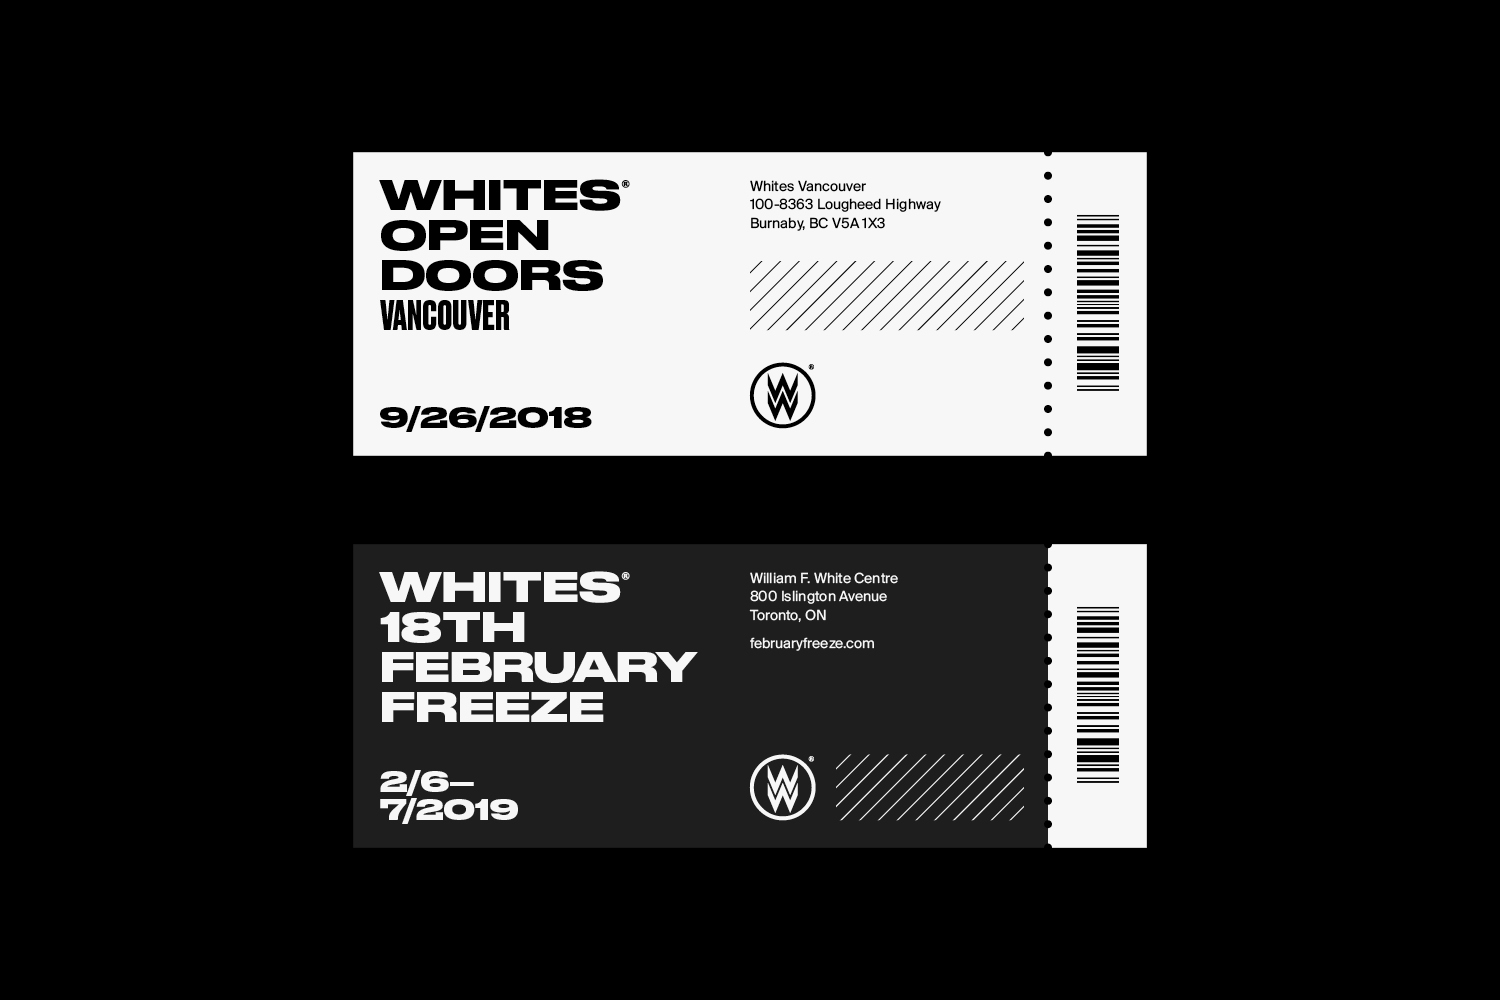 Whites-tickets.jpg